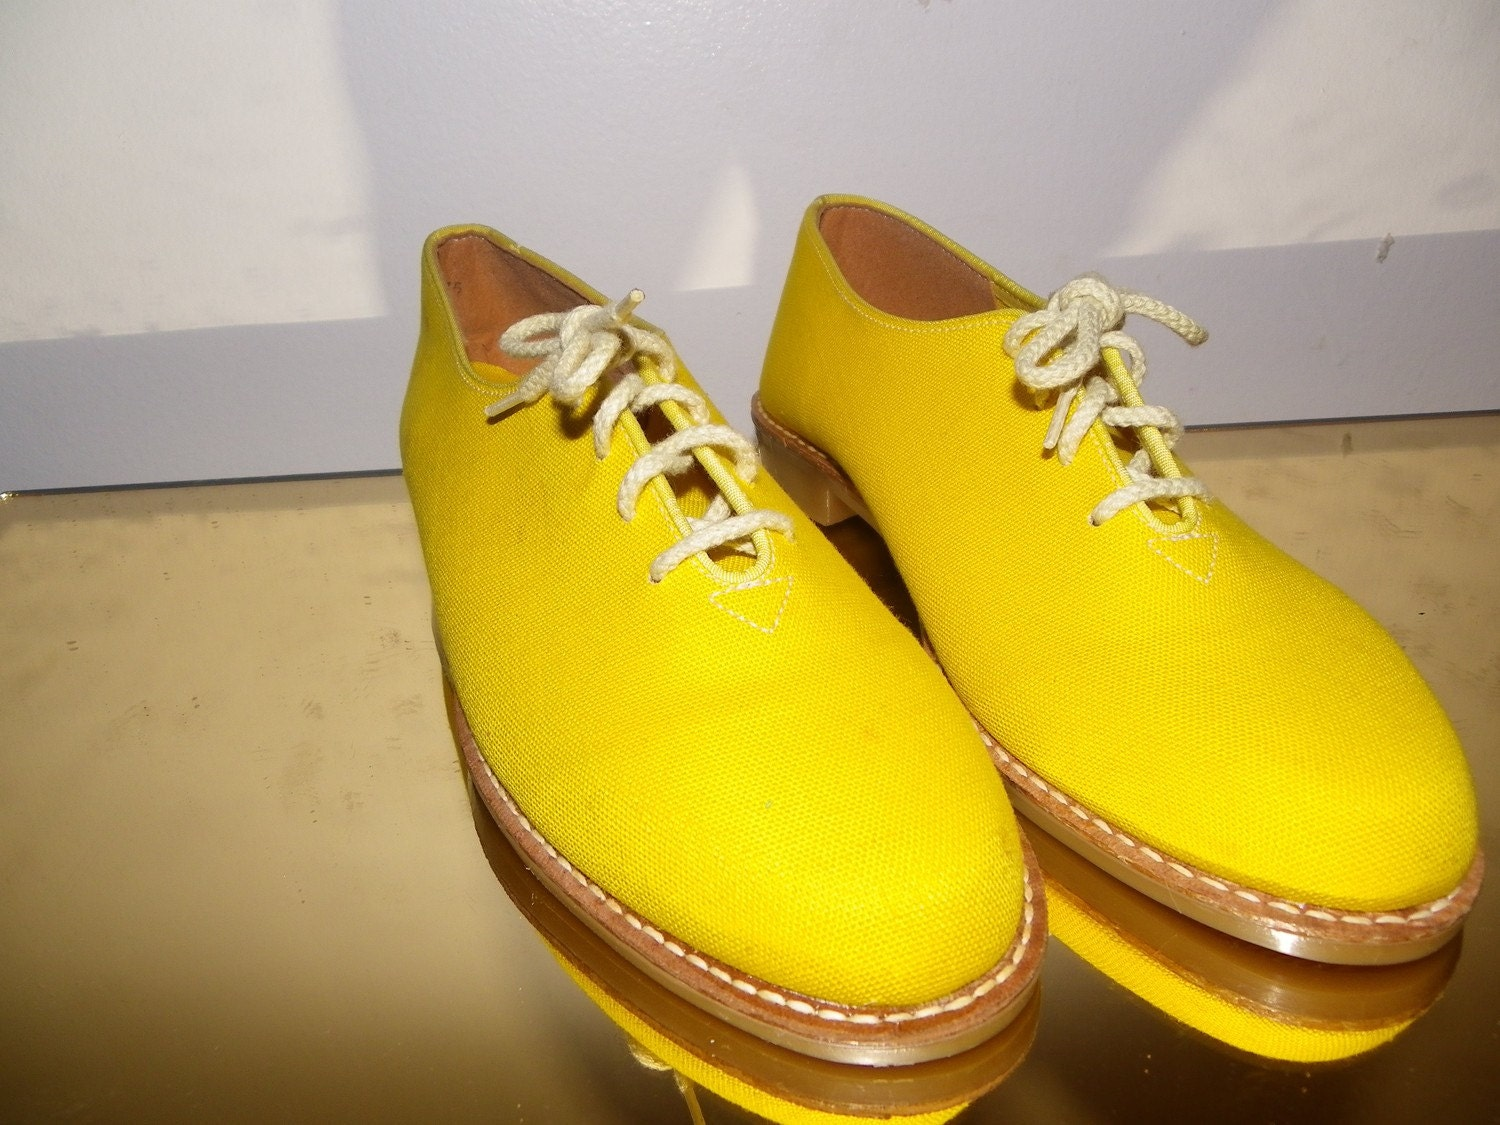 Bananas Oxfords Shoe Size 8 1/2 yellow canvas lace up oxford